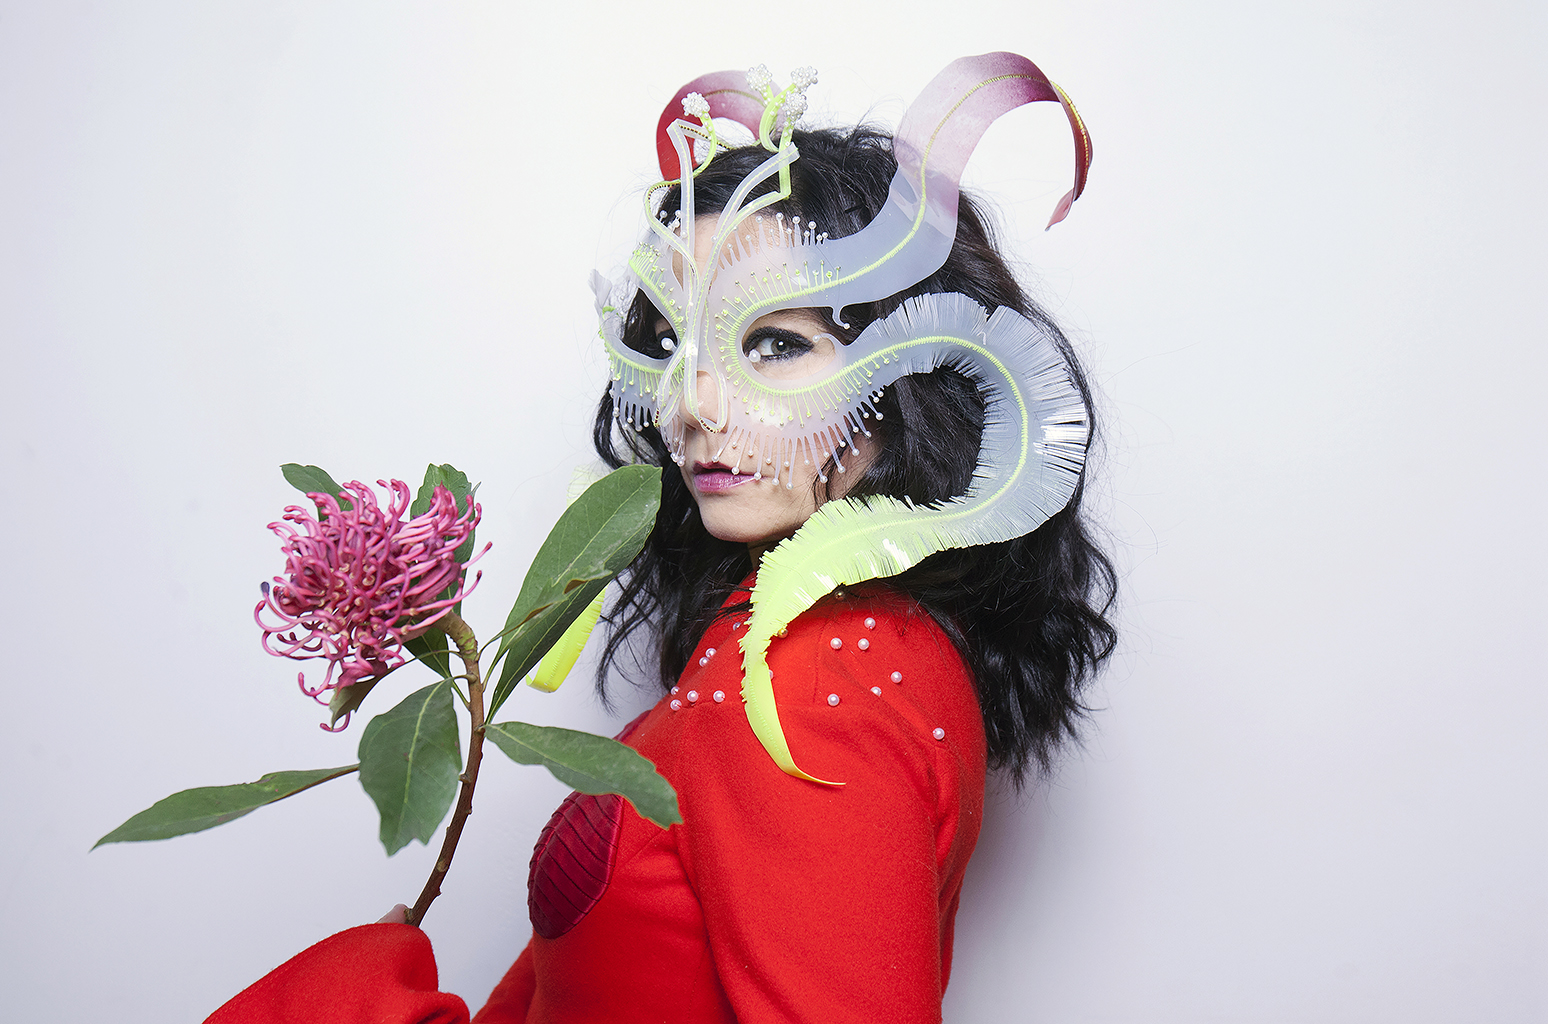 Singer Bjork poses for a portrait on October 27, 2016 in Montreal, Canada. (Photo by Santiago Felipe/Getty Images Portrait)